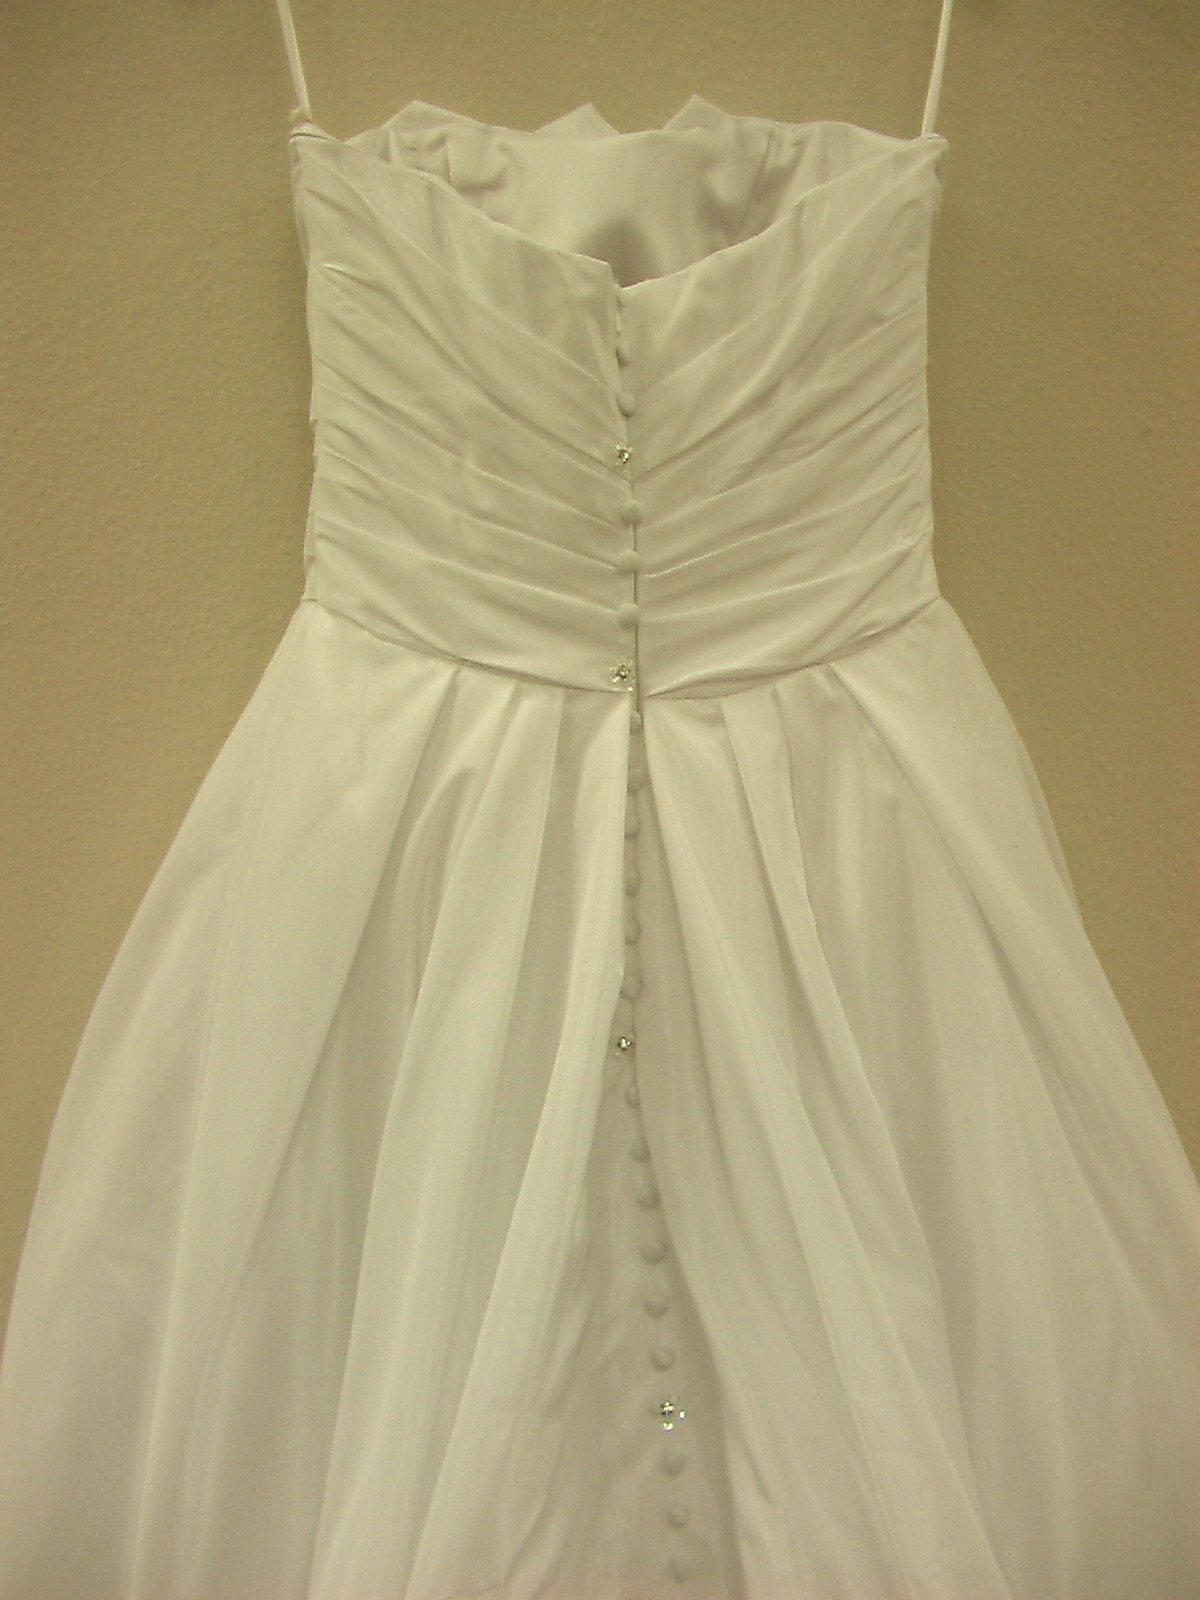 Jacquelin Exclusive 19857 White/Silver size 8 In Stock Wedding Dress - Tom's Bridal